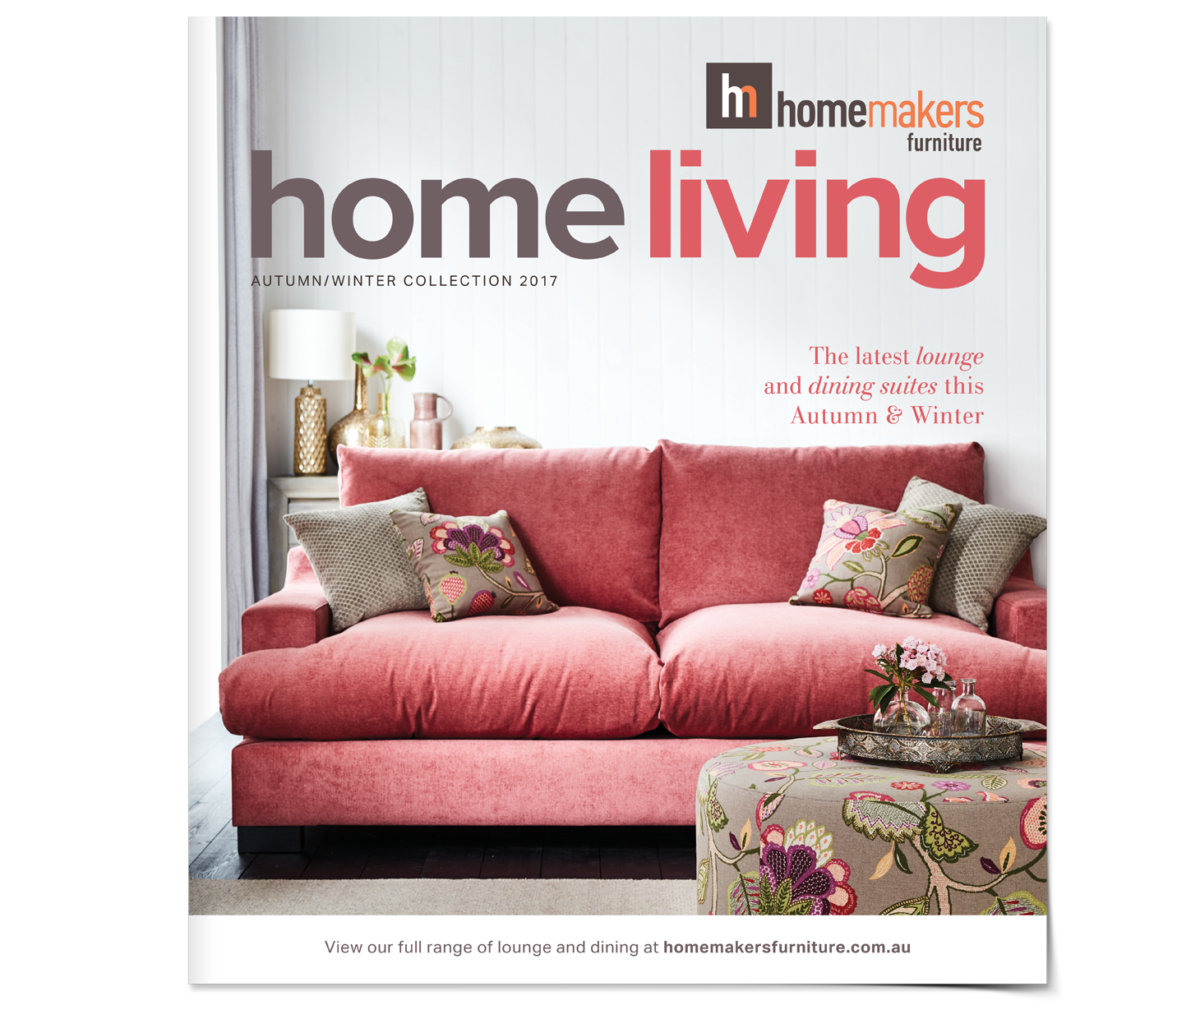 Homemakers Furniture Kinc Agency Homemakers Catalogue Design